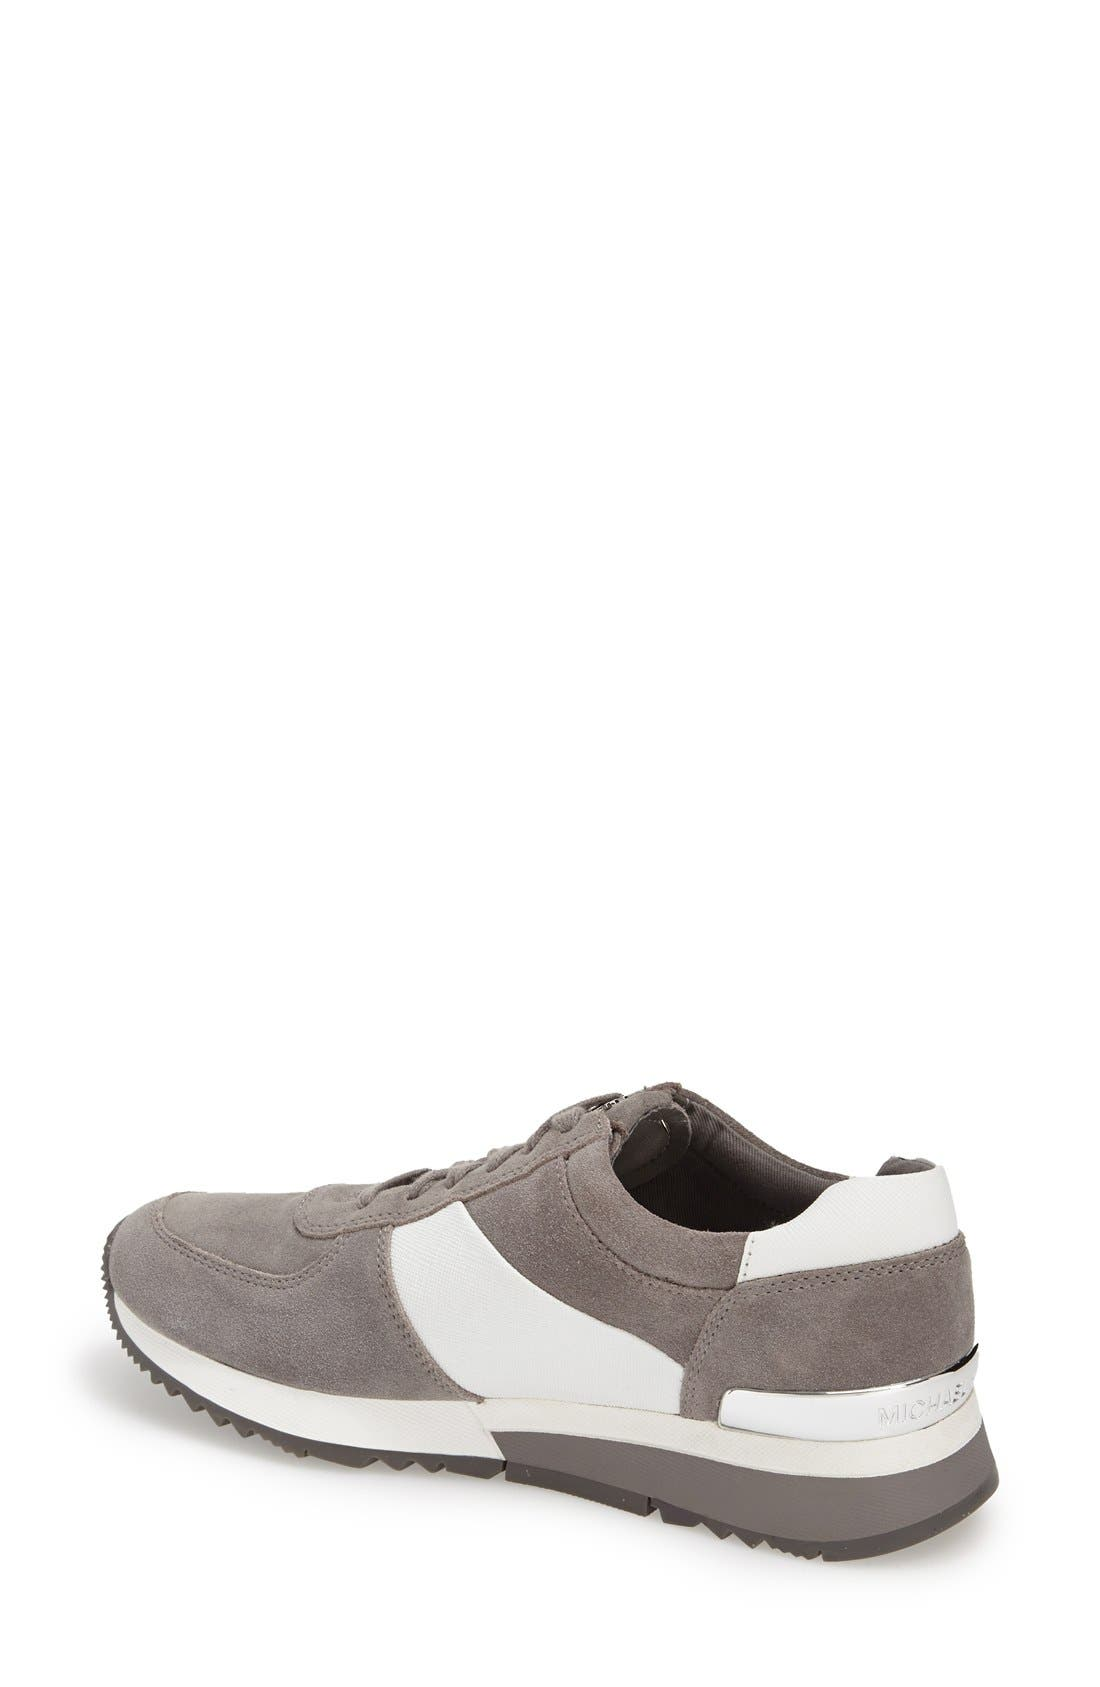 Alternate Image 2  - MICHAEL Michael Kors 'Allie' Sneaker (Women)